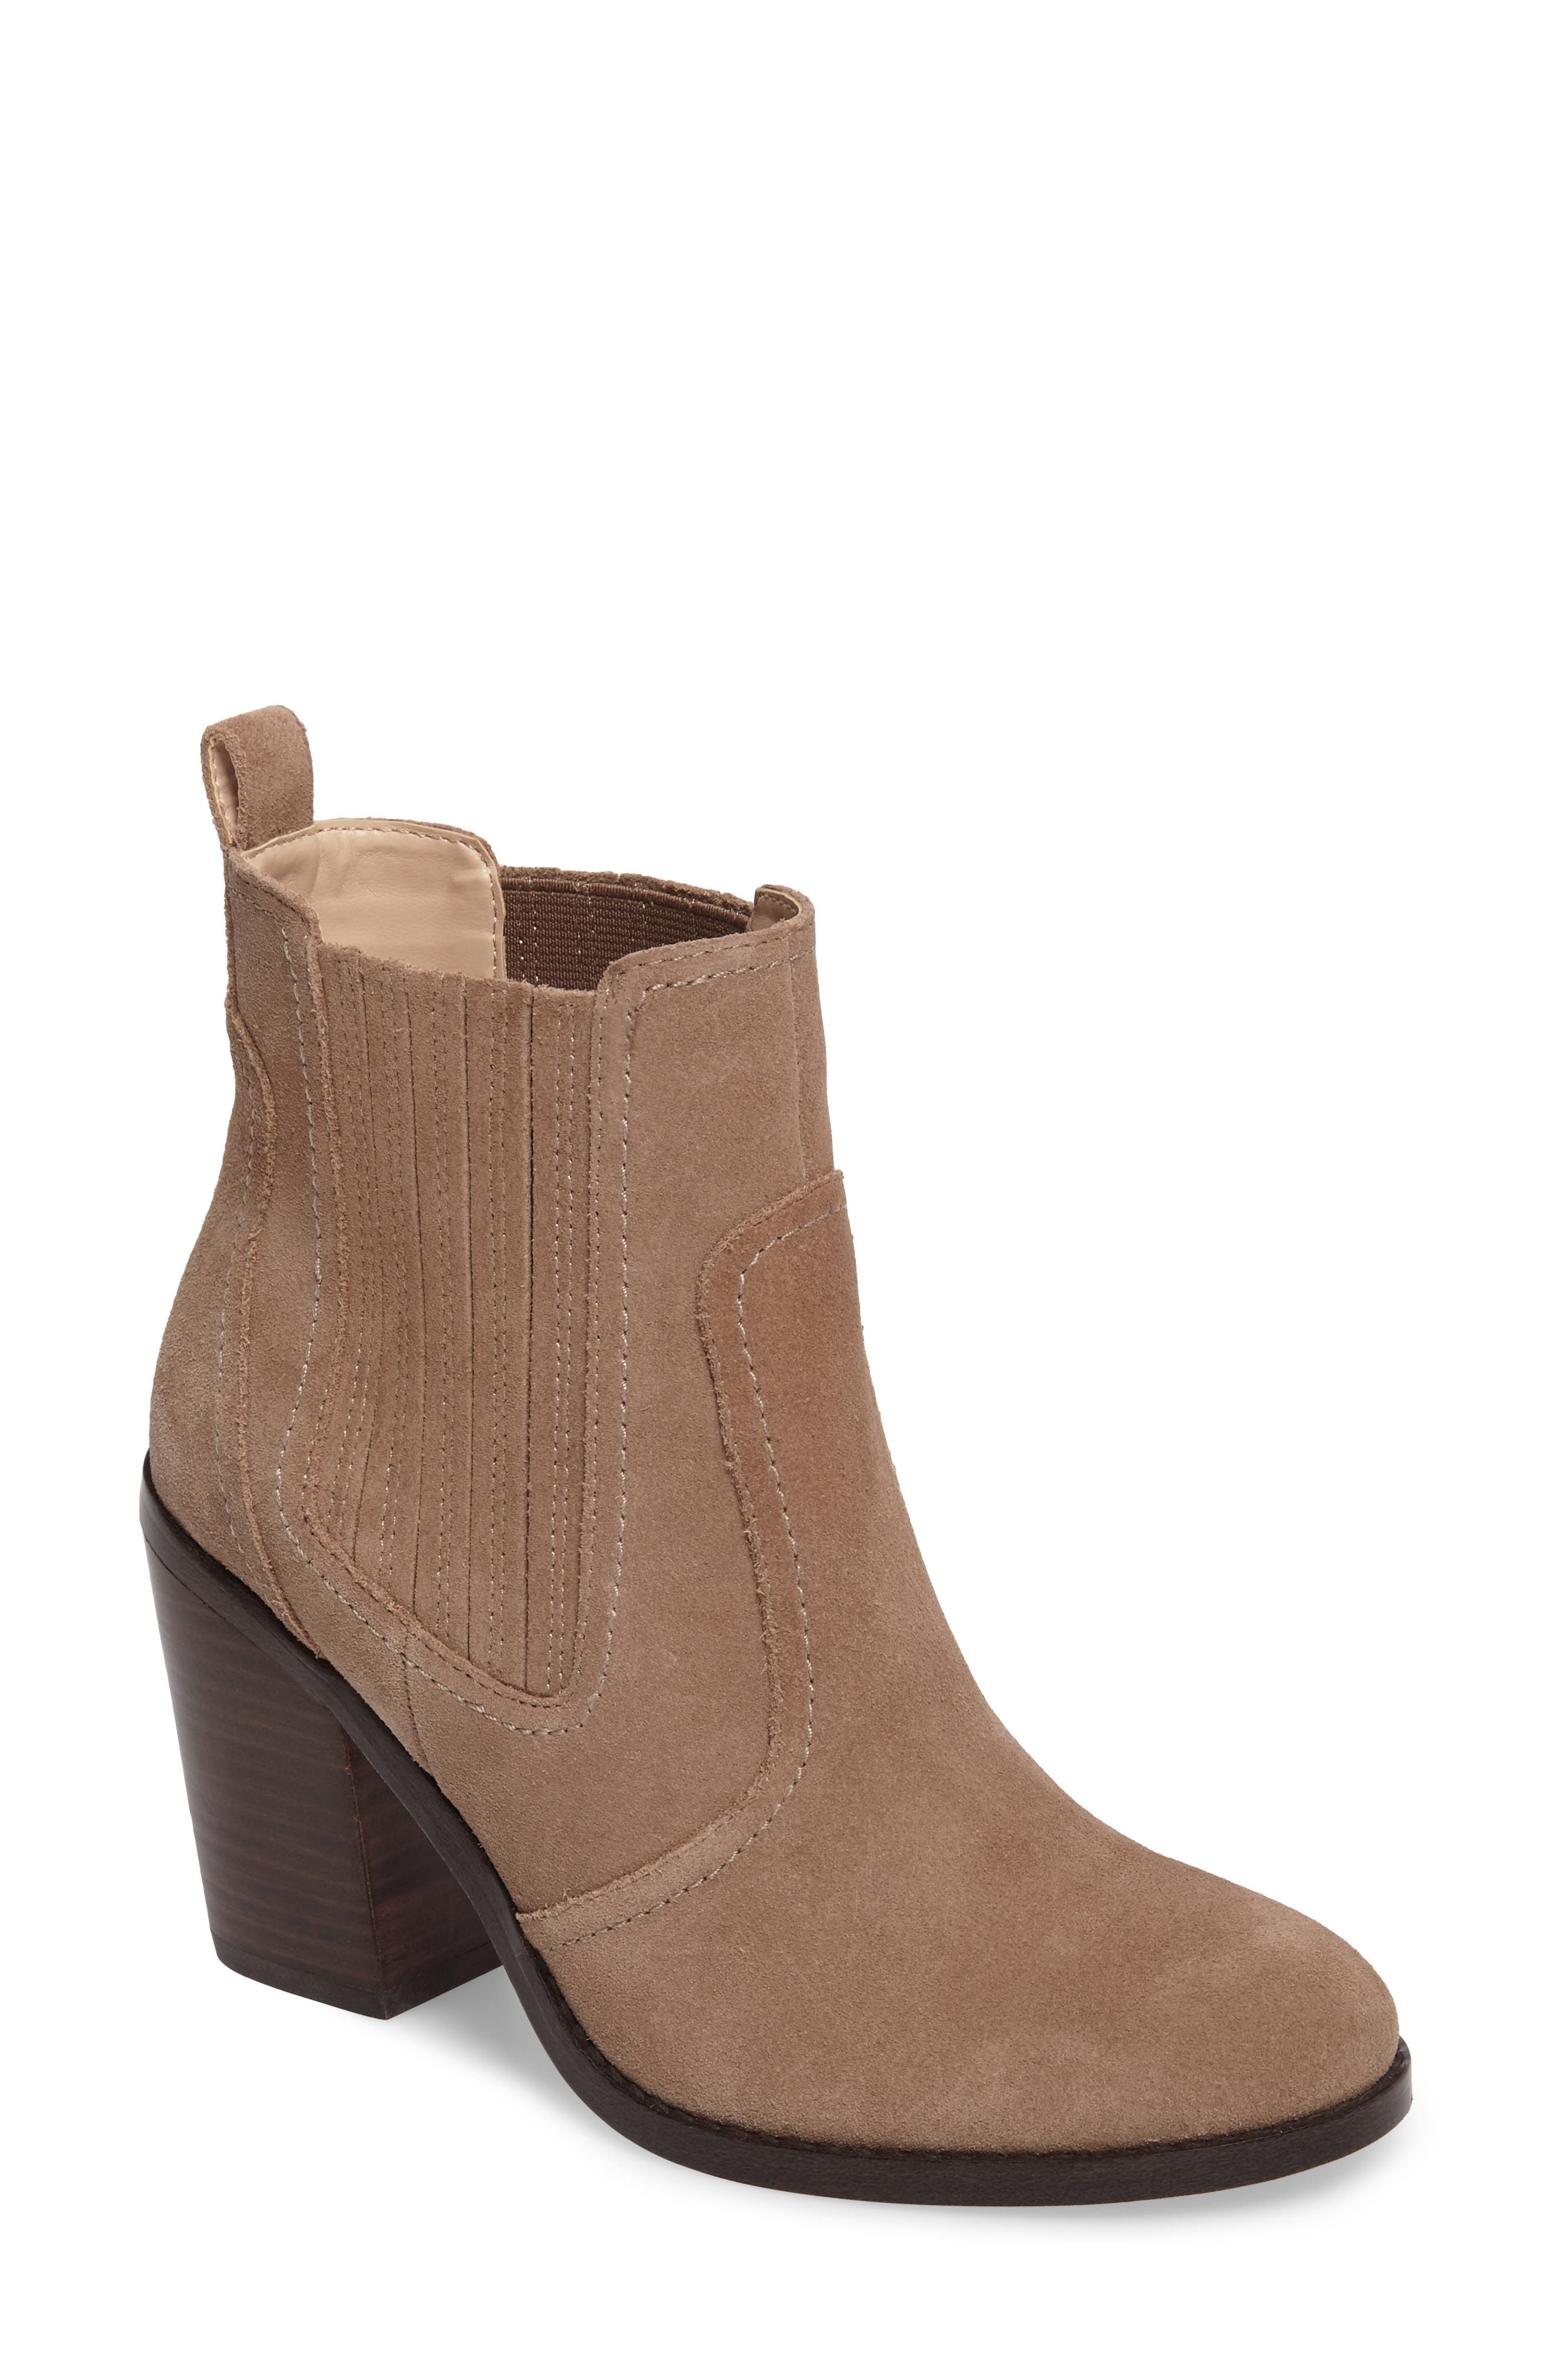 Alternate Image 1 Selected - Sole Society Harbor Bootie (Women)